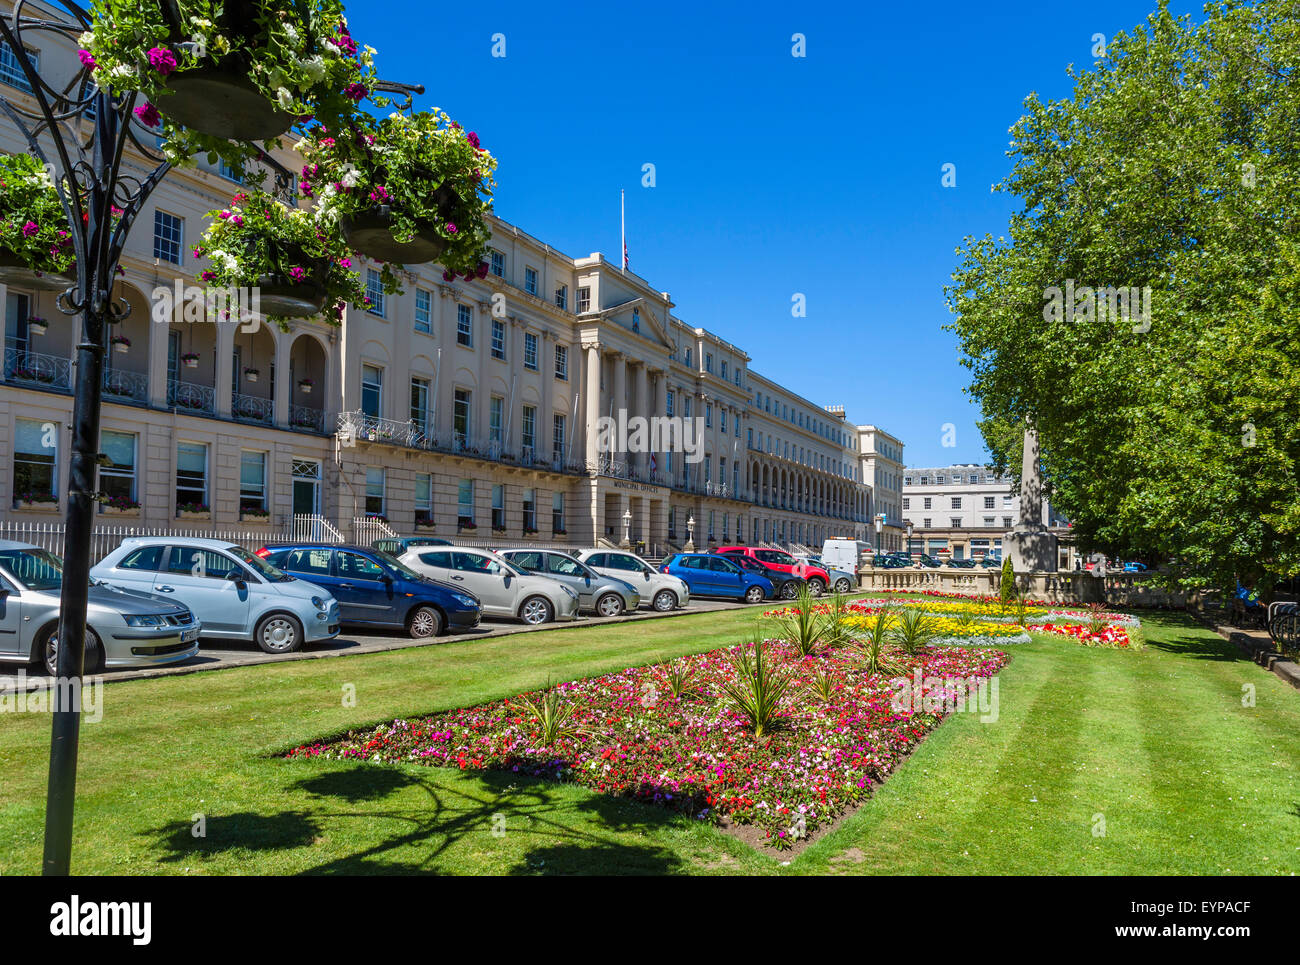 Regency architecture on The Promenade with the Municipal Offices to the left, Cheltenham, Gloucestershire, England, - Stock Image